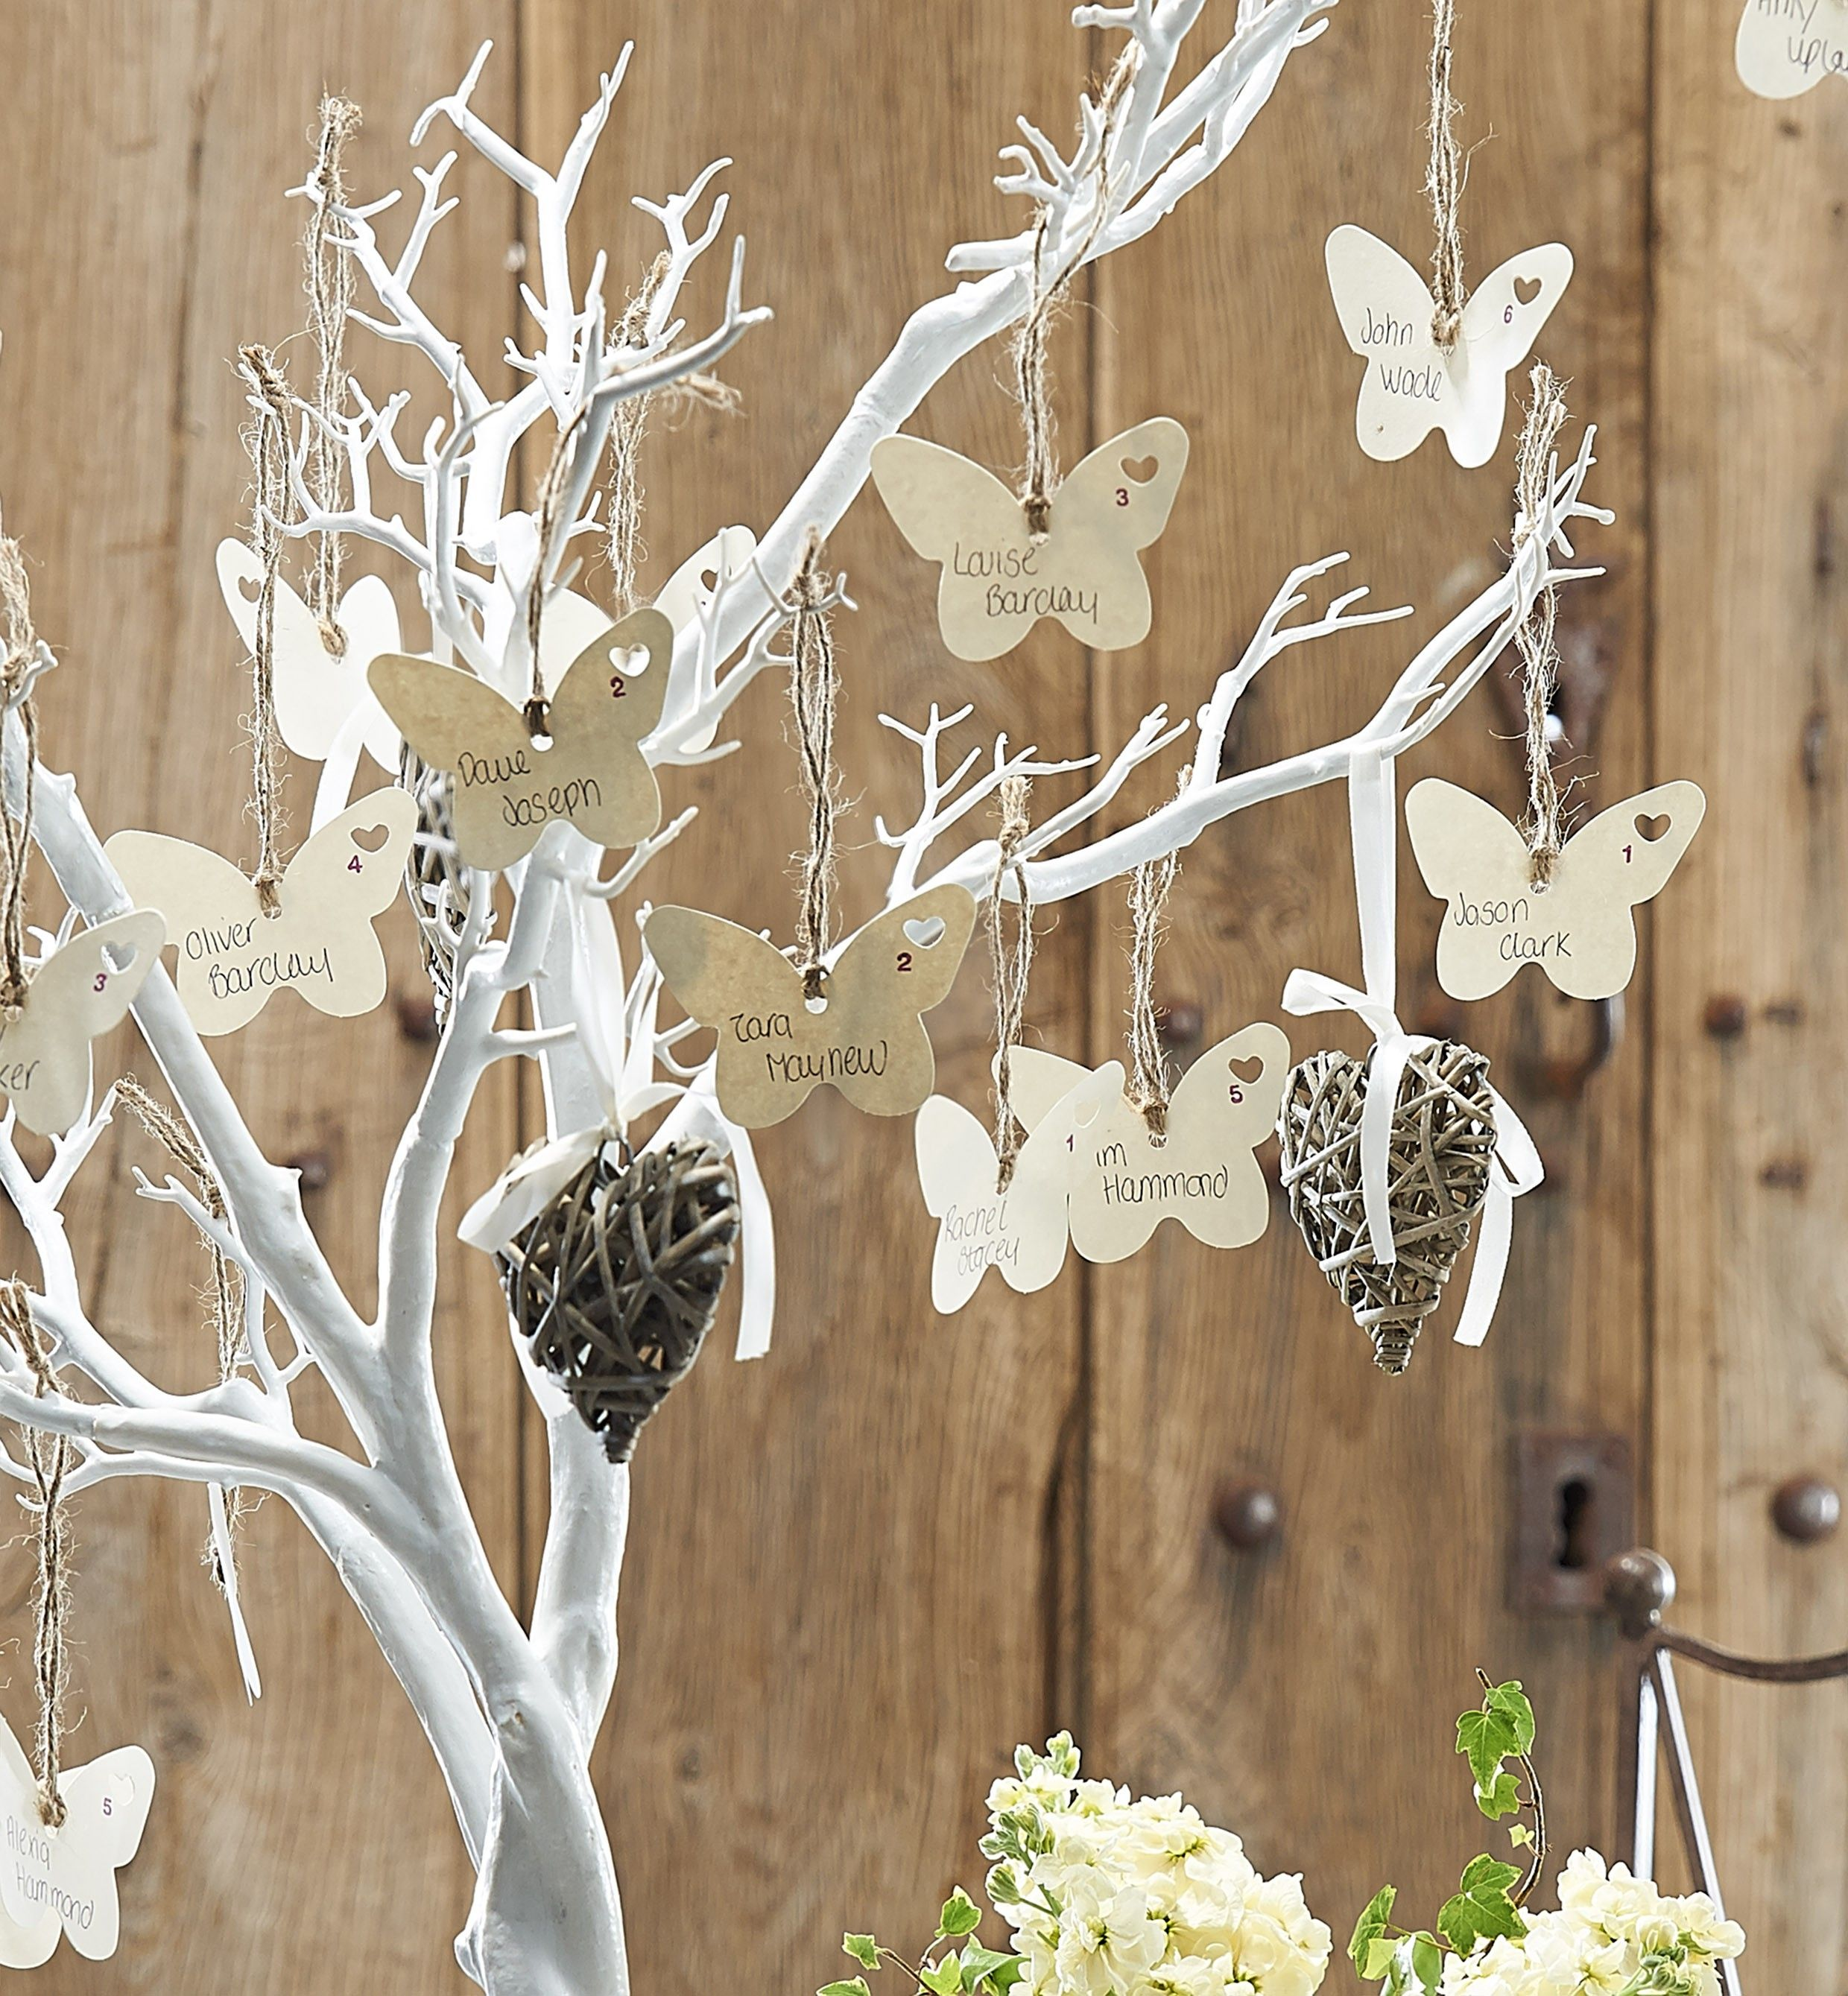 Beautiful Idea For A Wedding Using The Hobbycraft White Tree Only GBP2999